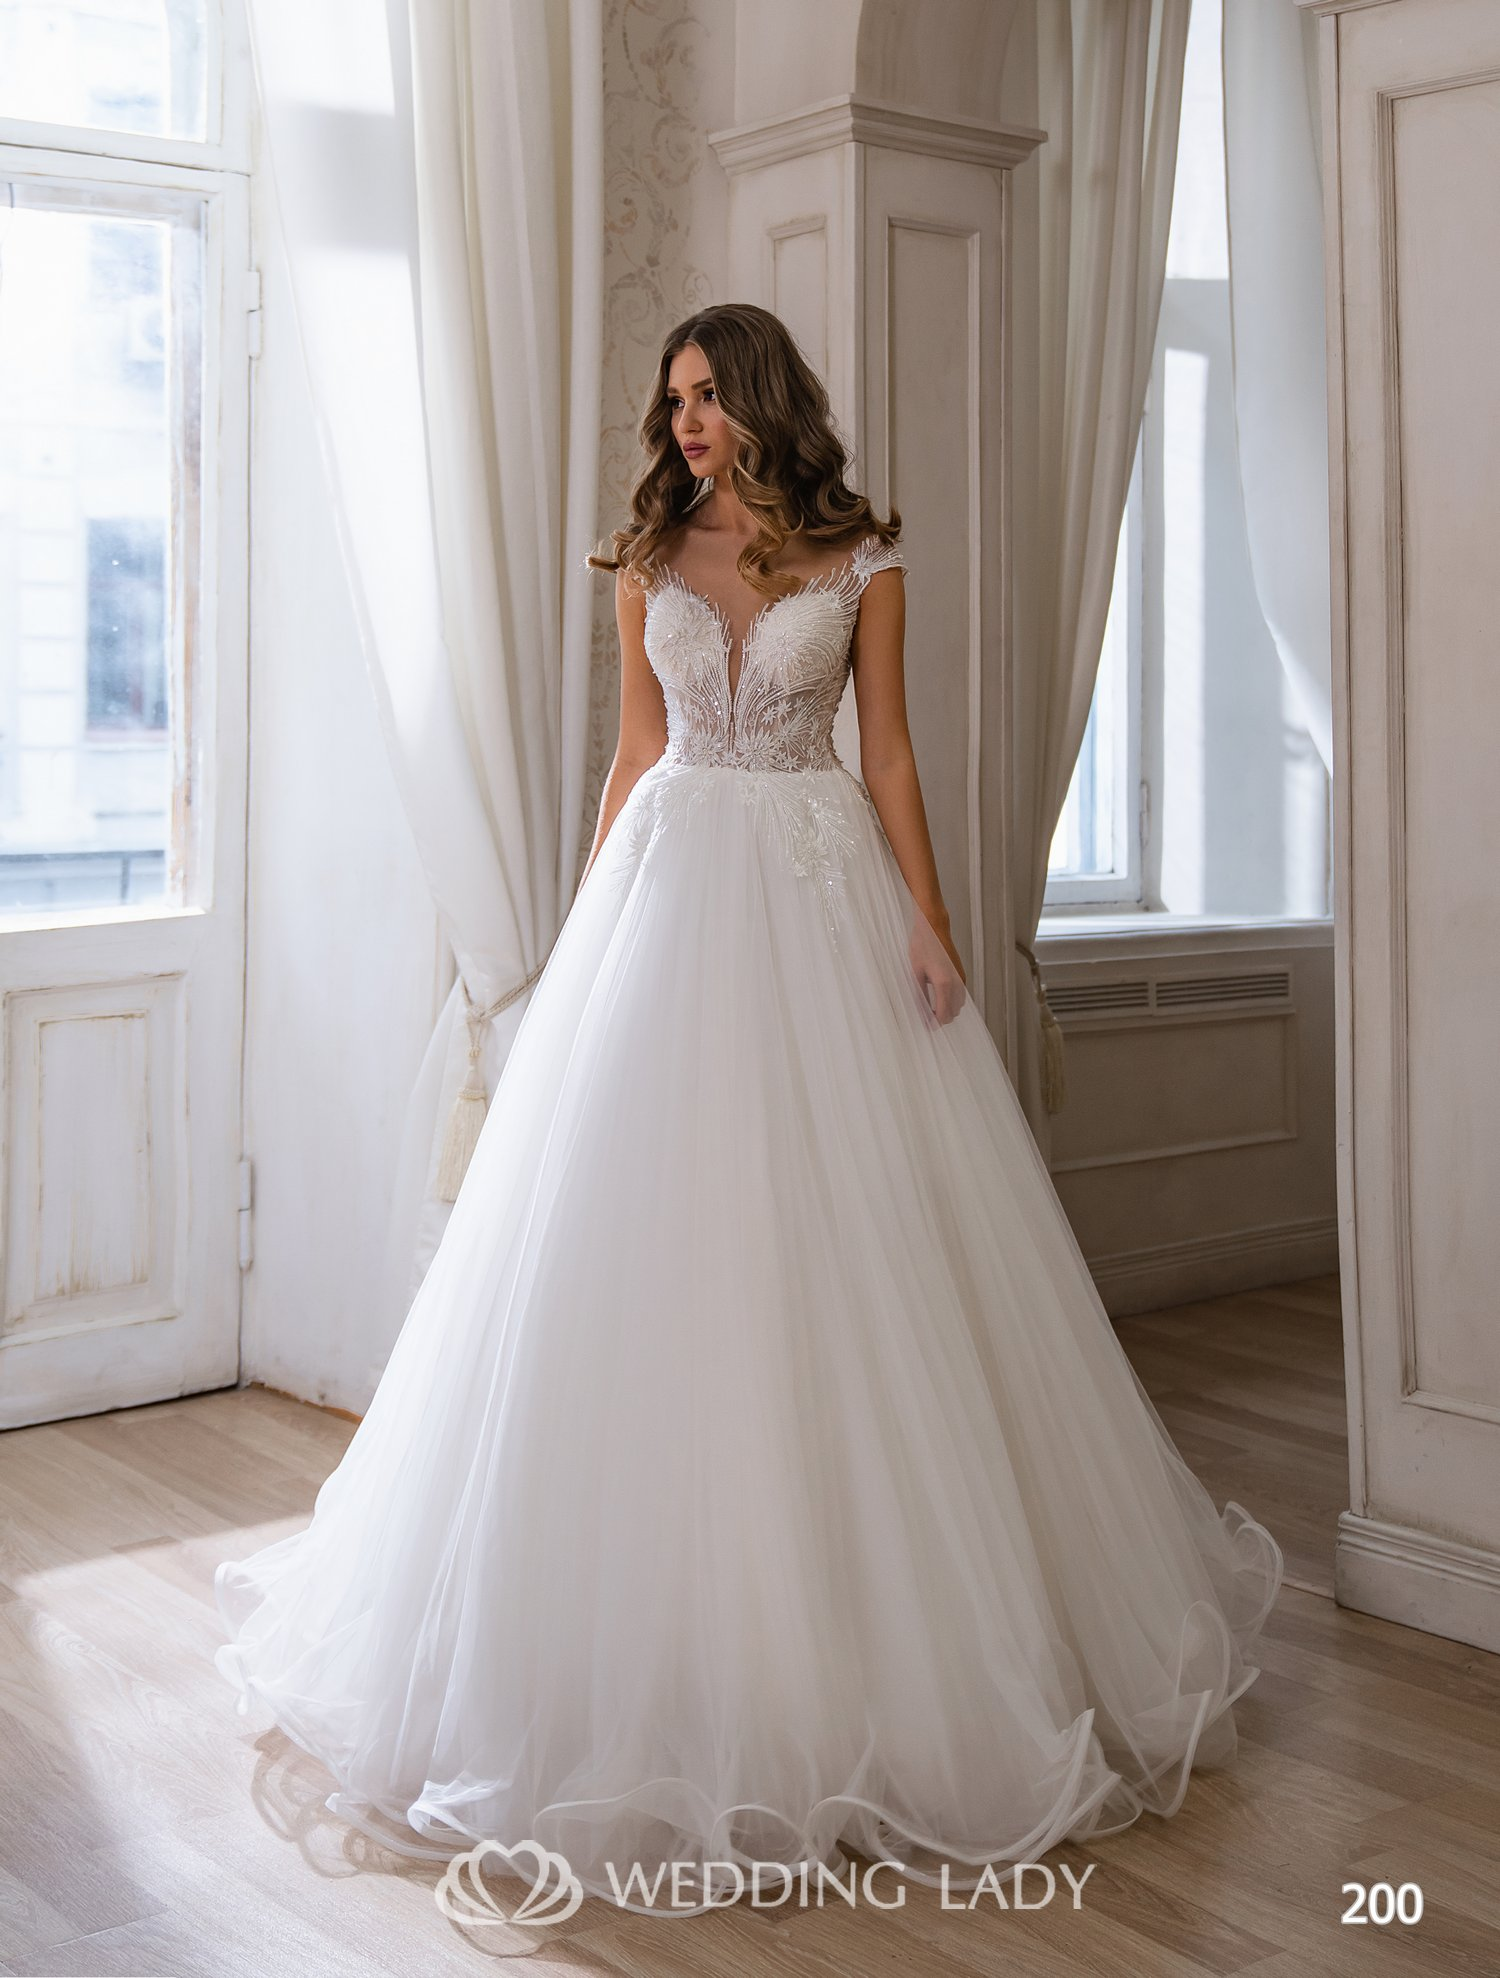 https://wedding-lady.com/images/stories/virtuemart/product/200       (1).jpg